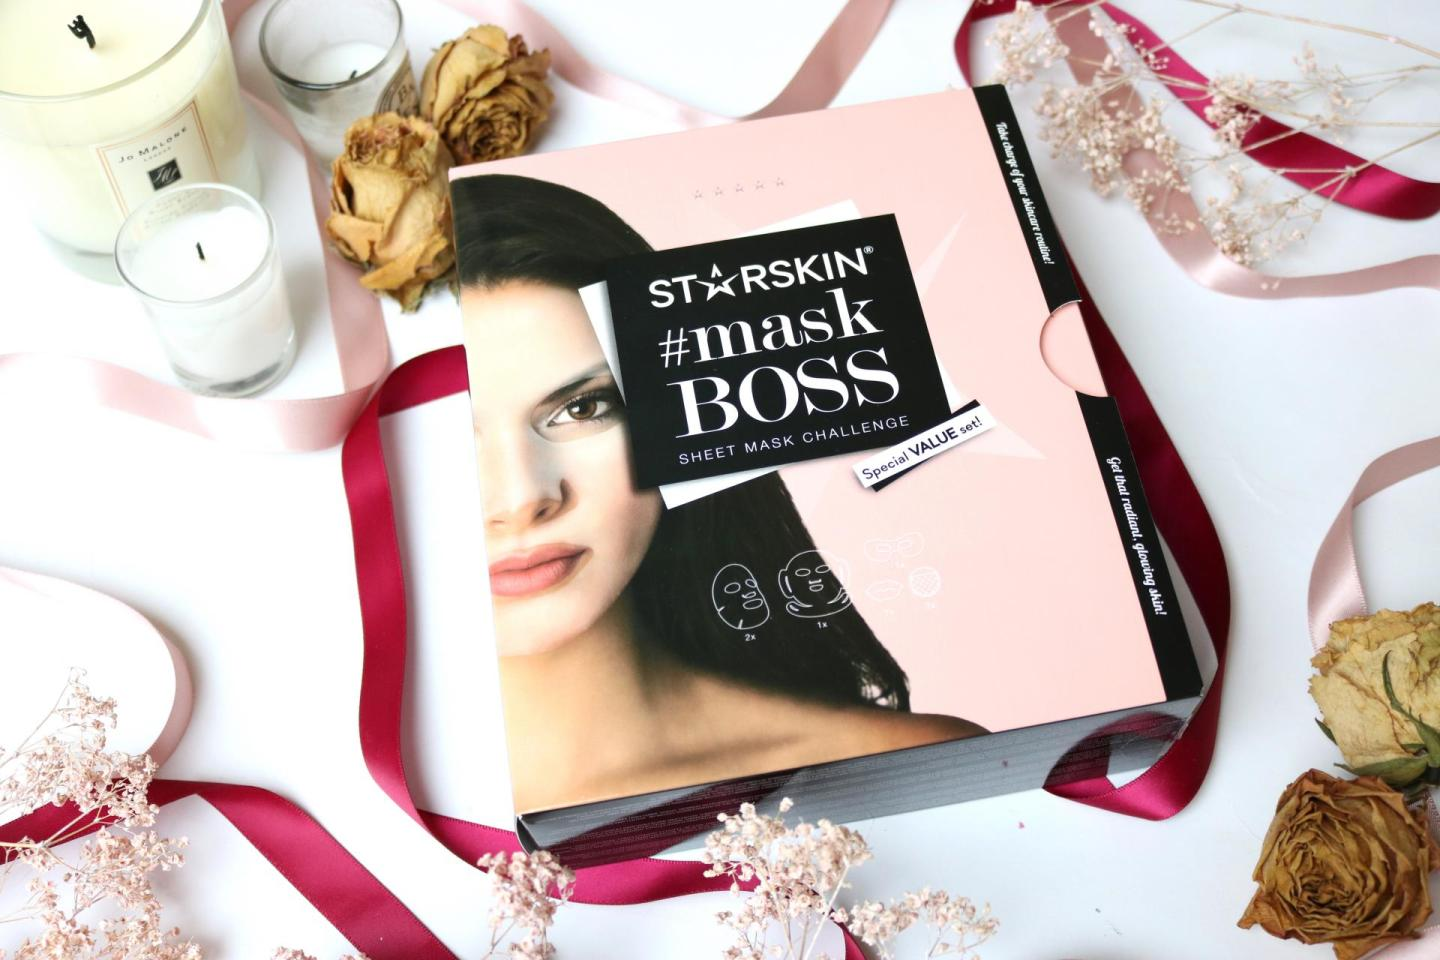 The #MaskBoss challenge with STARSKIN